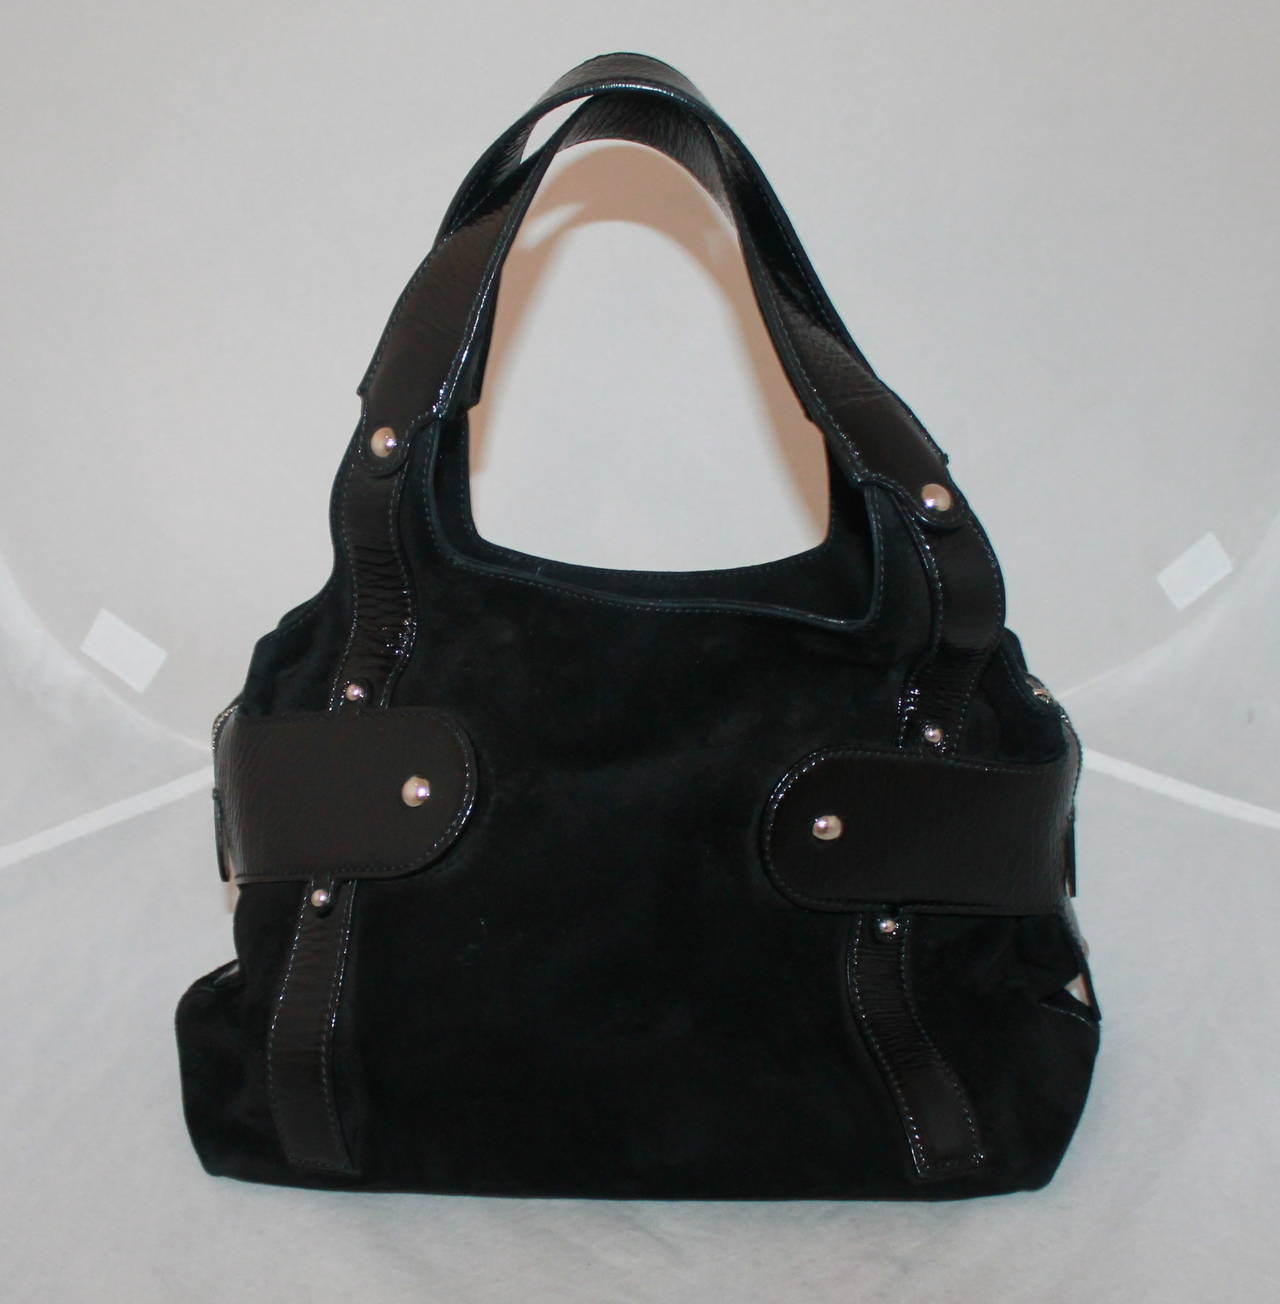 720bafcde1 Salvatore Ferragamo Black Suede   Patent Leather Shoulder Bag In Good  Condition For Sale In Palm